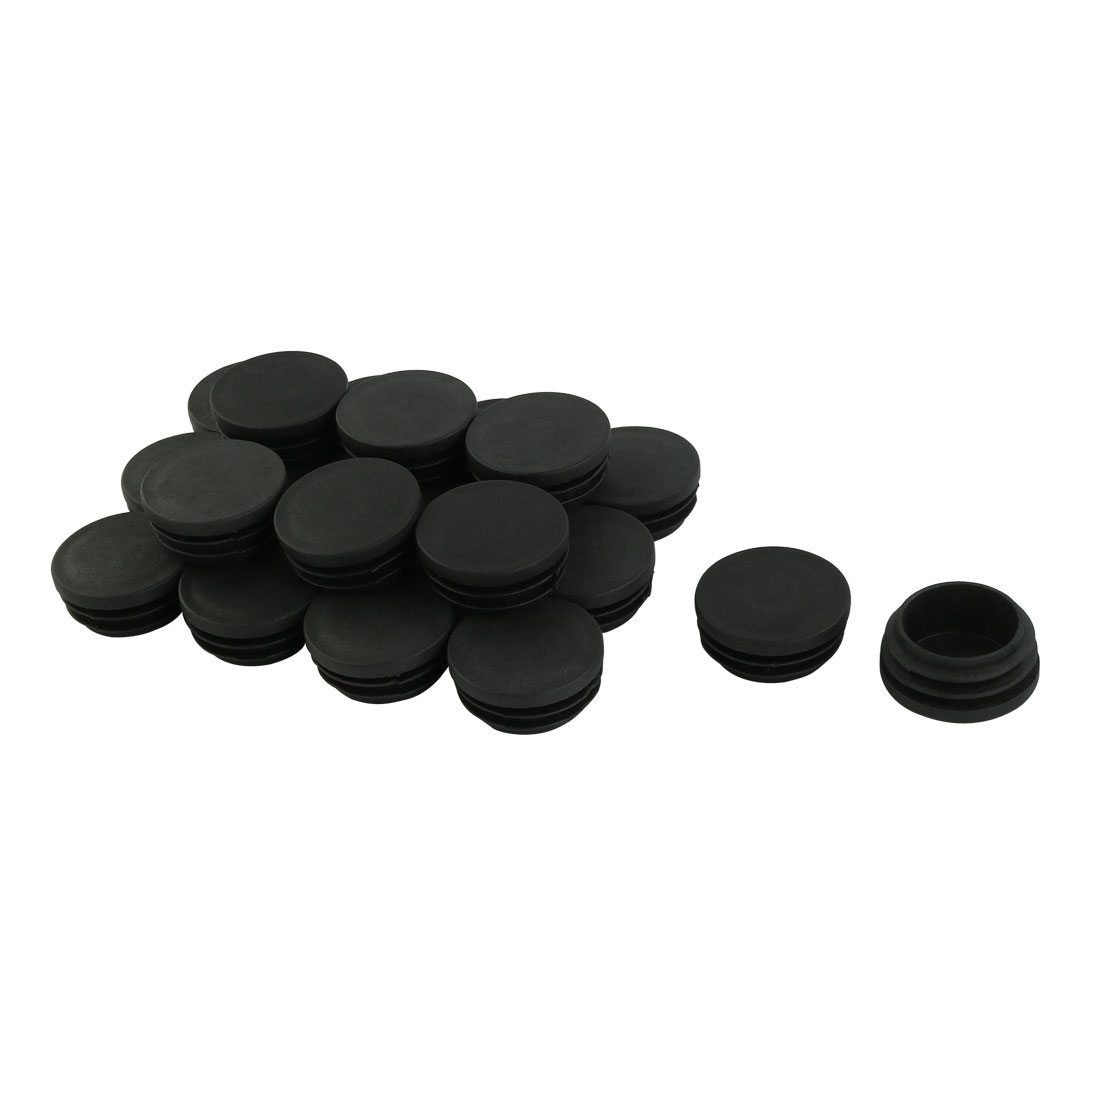 38mm Black Hard Plastic Round Tubing Tube Insert Blanking End Caps 20Pcs